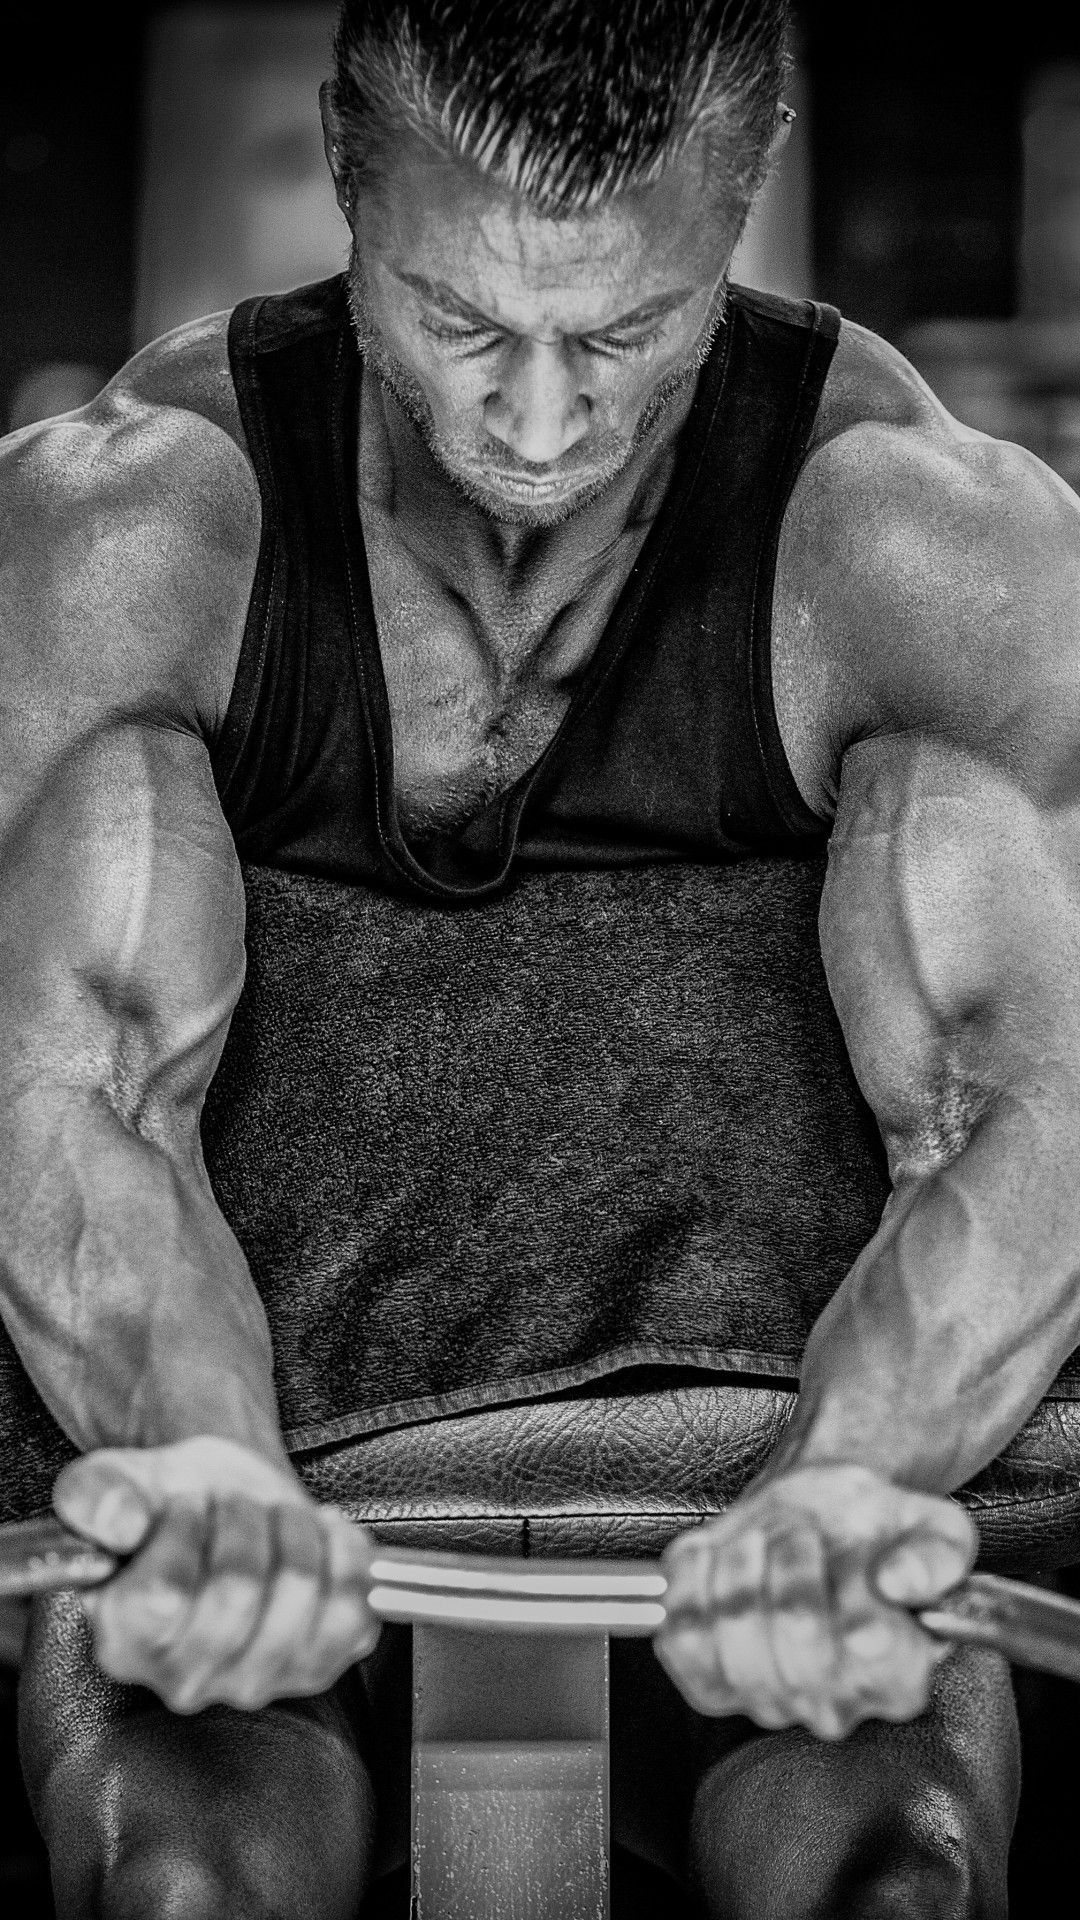 1080x1920 Download 1080x1920 Weight, Bodybuilding, Monochrome, Muscles ...